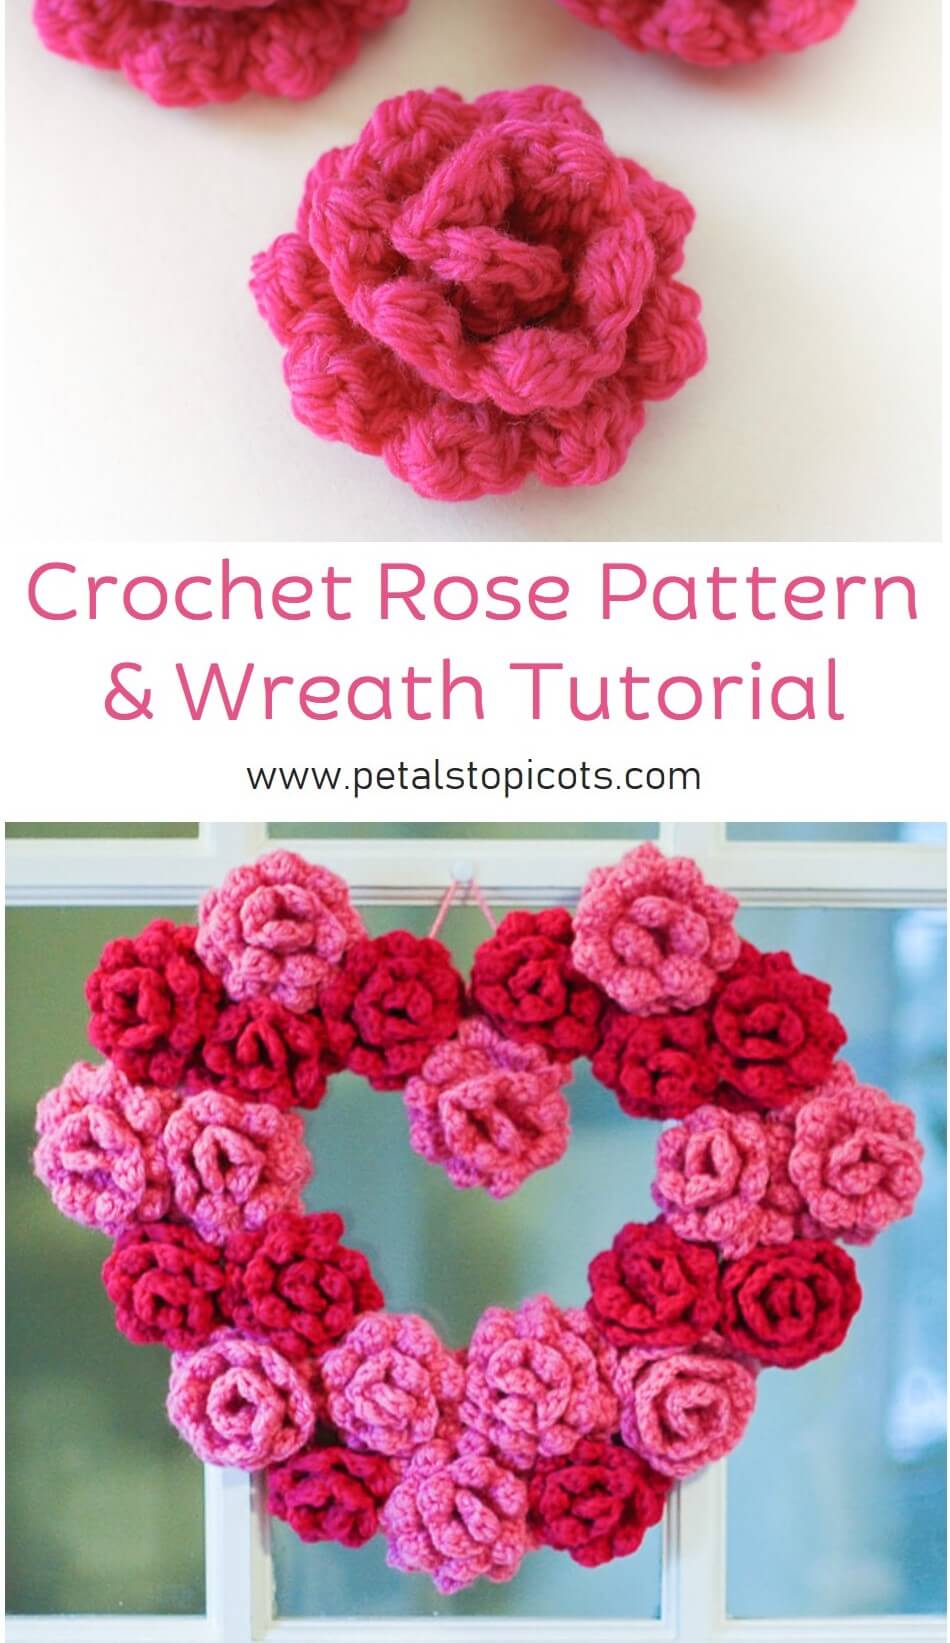 This crochet rose pattern is so super easy...just two simple rows and done! Once you learn how to crochet them, you can make the rose heart wreath included.